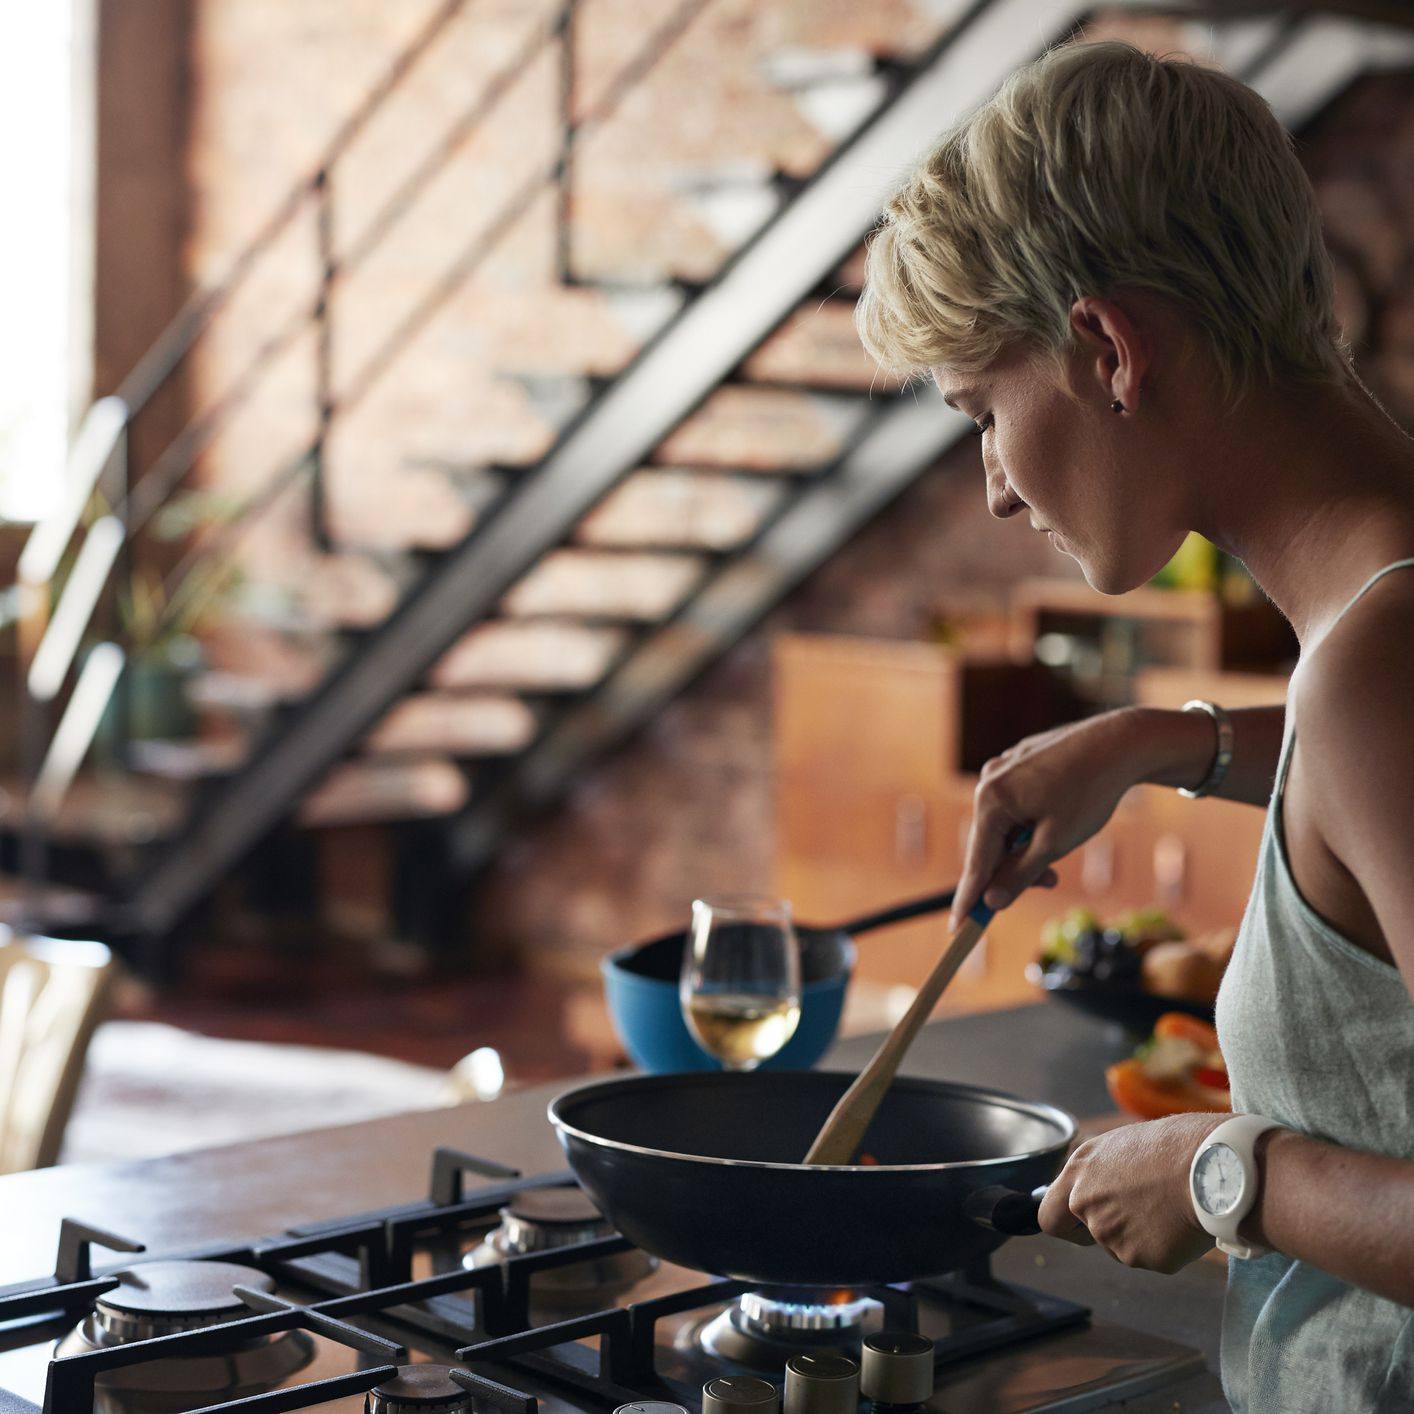 The 5 Best Induction Cooktops Of 2019